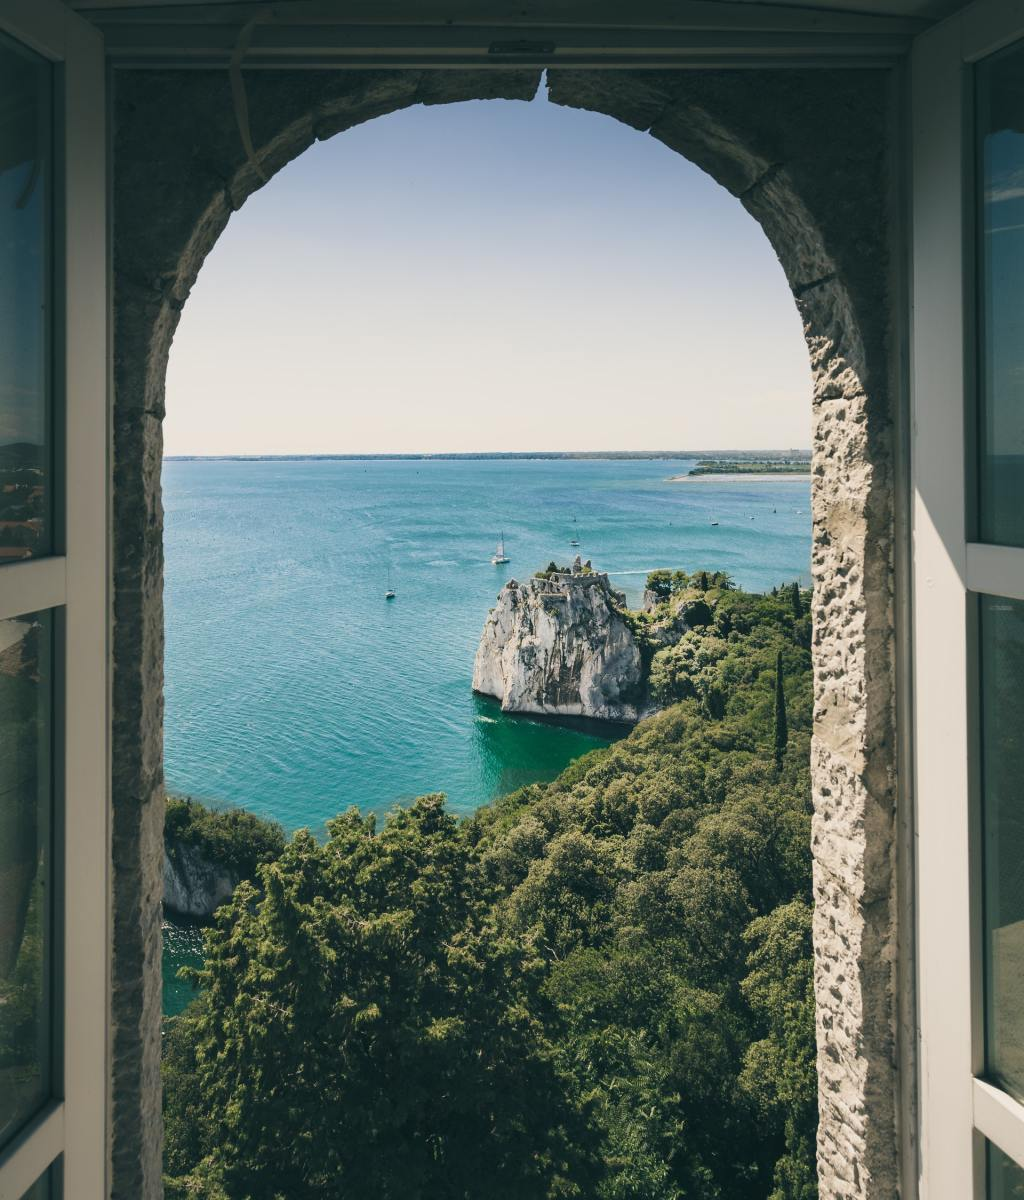 A heart-melting view from a window in Duino, Italy.